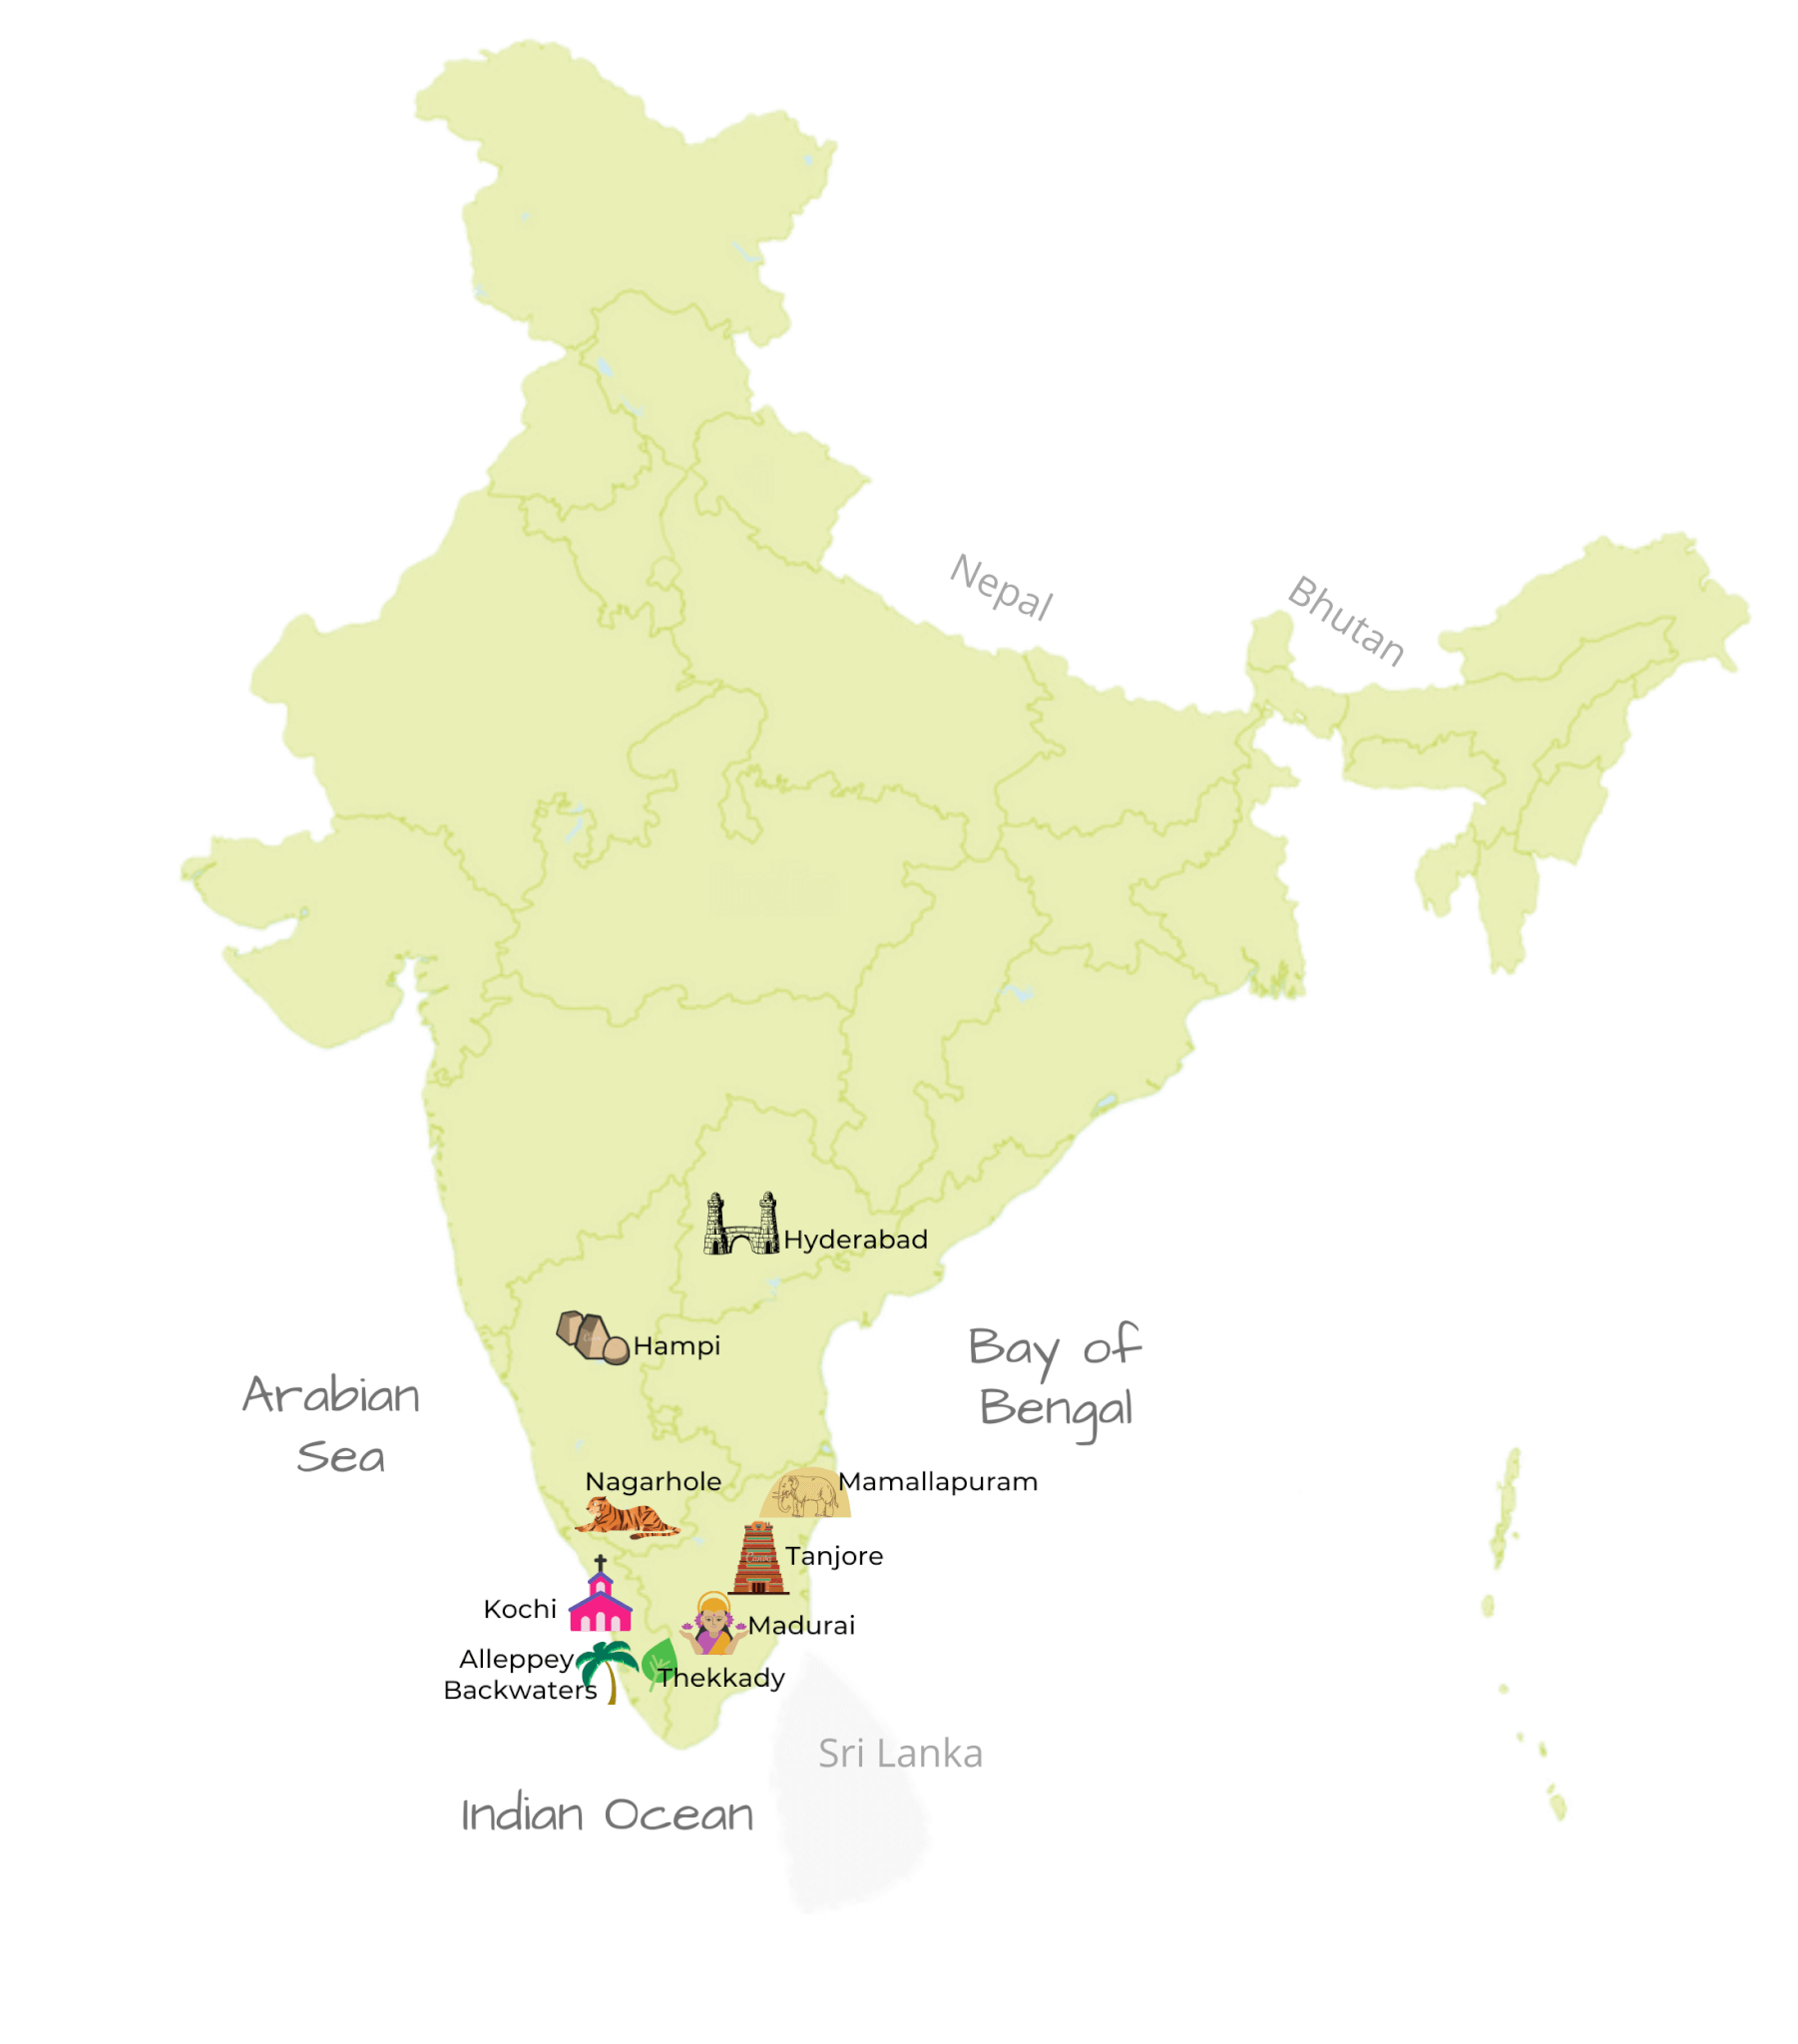 South India destinations map by Jasmine Trails